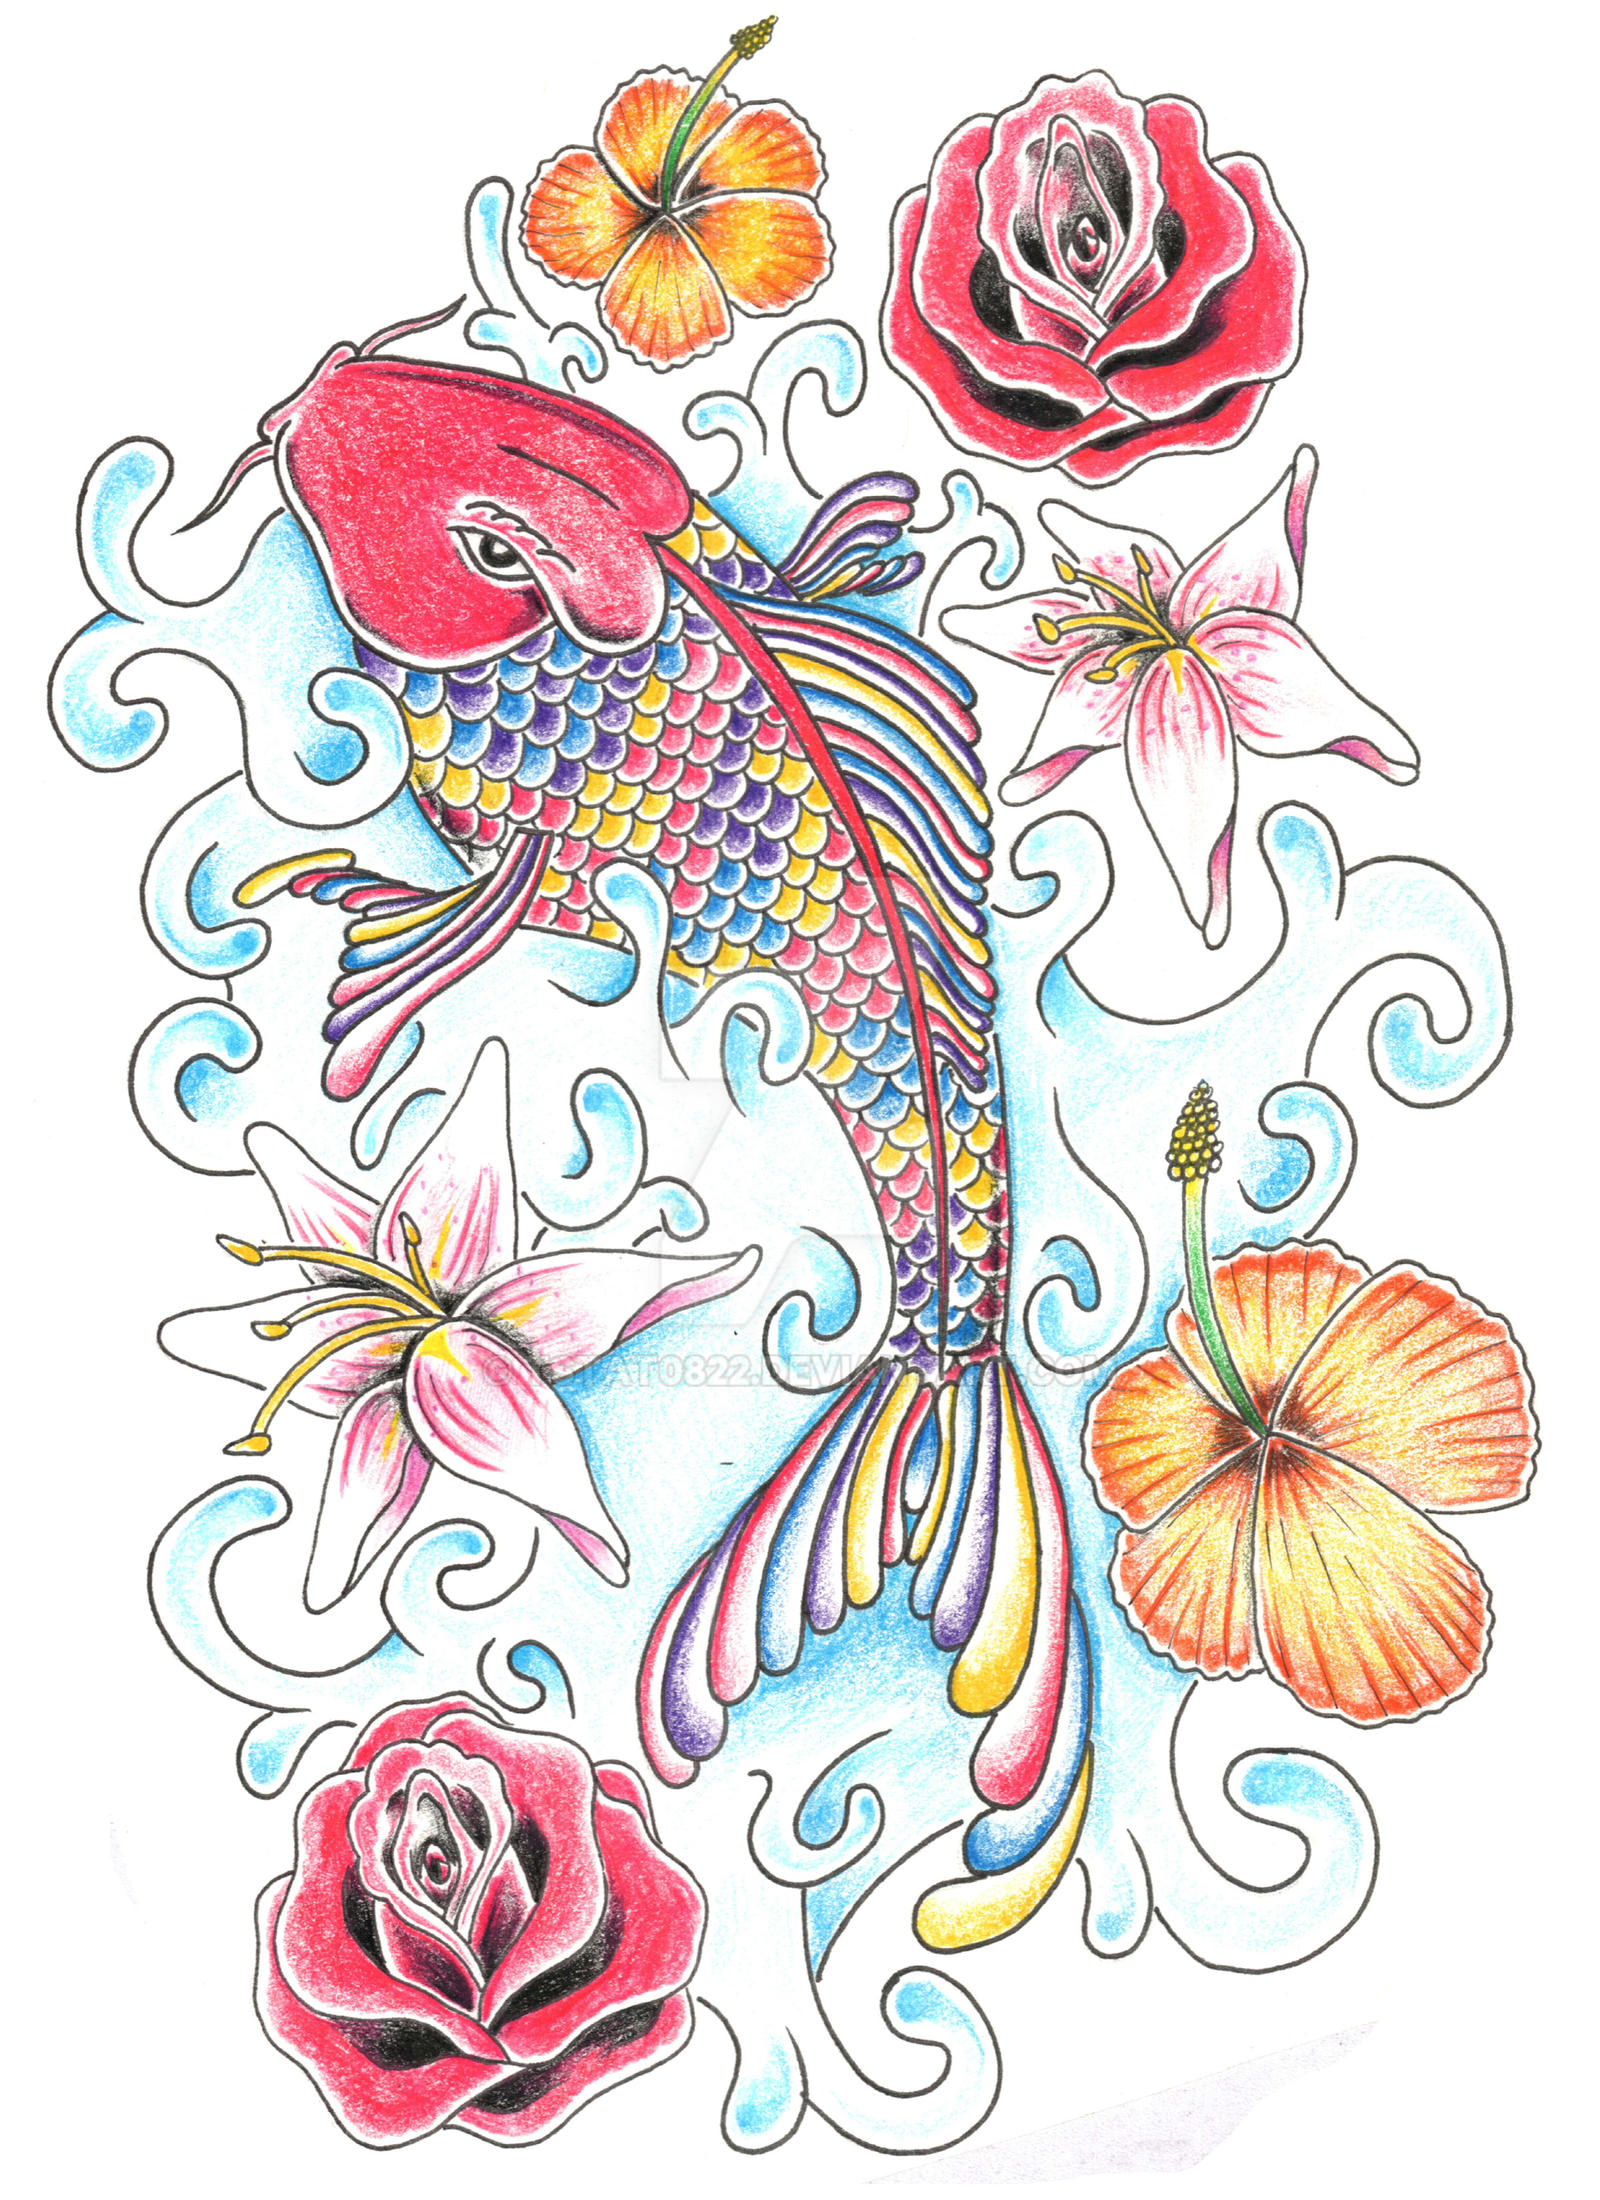 Rainbow koi fish by tstat0822 on deviantart for Rainbow koi fish